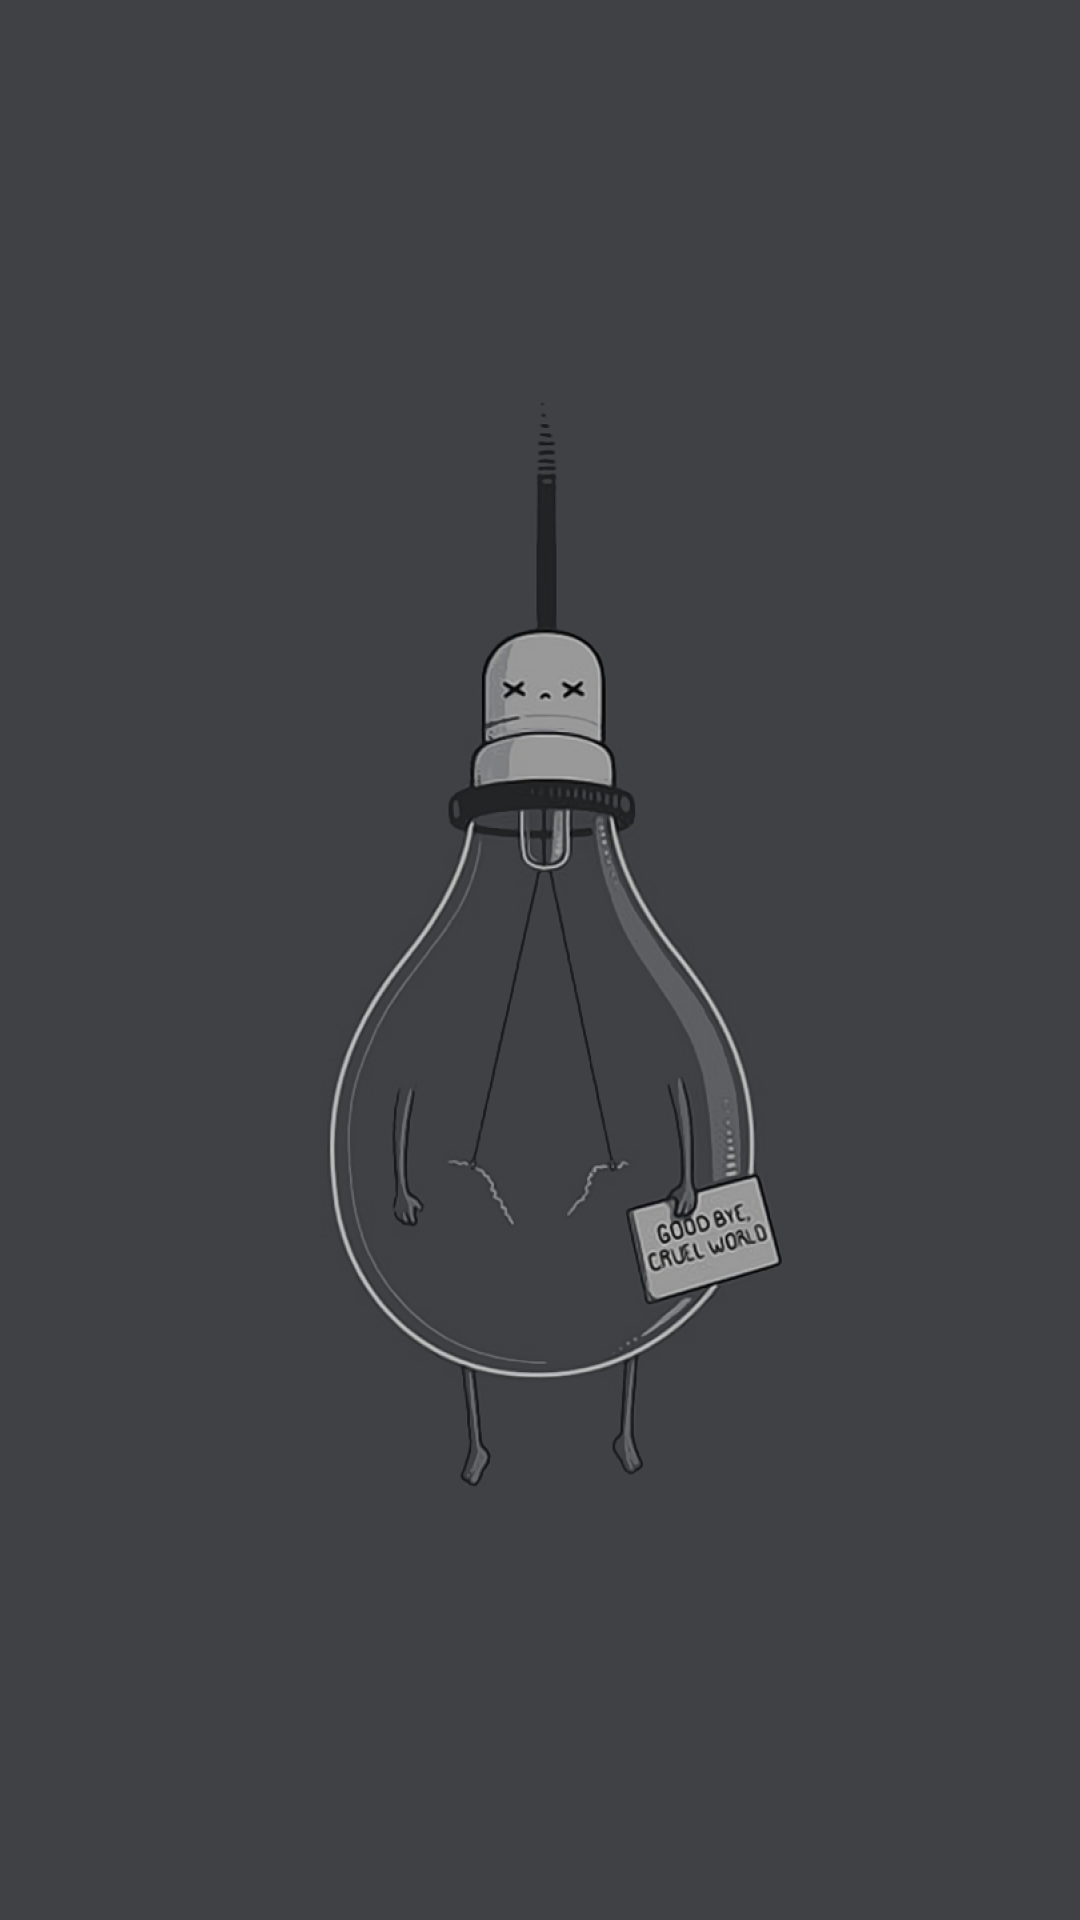 Simple humor lightbulb. Tap to see more simple Apple iPhone 6s Plus HD wallpapers, backgrounds, fondos. Minimal pattern shapes - @mobile9